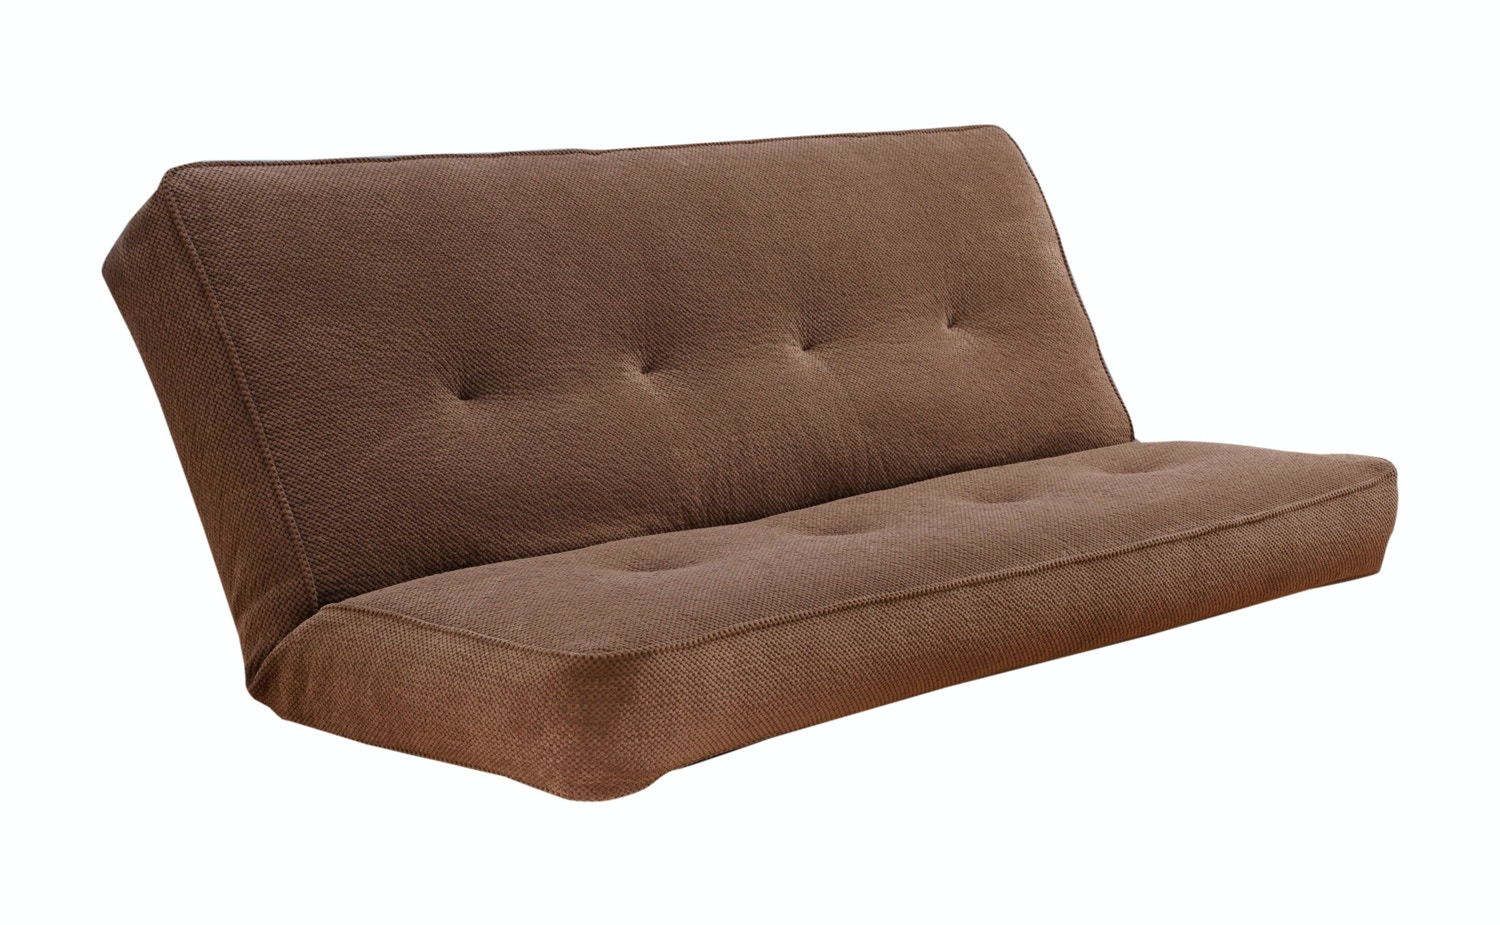 Kodiak Furniture Futon Mattress Maramont Mocha 056438